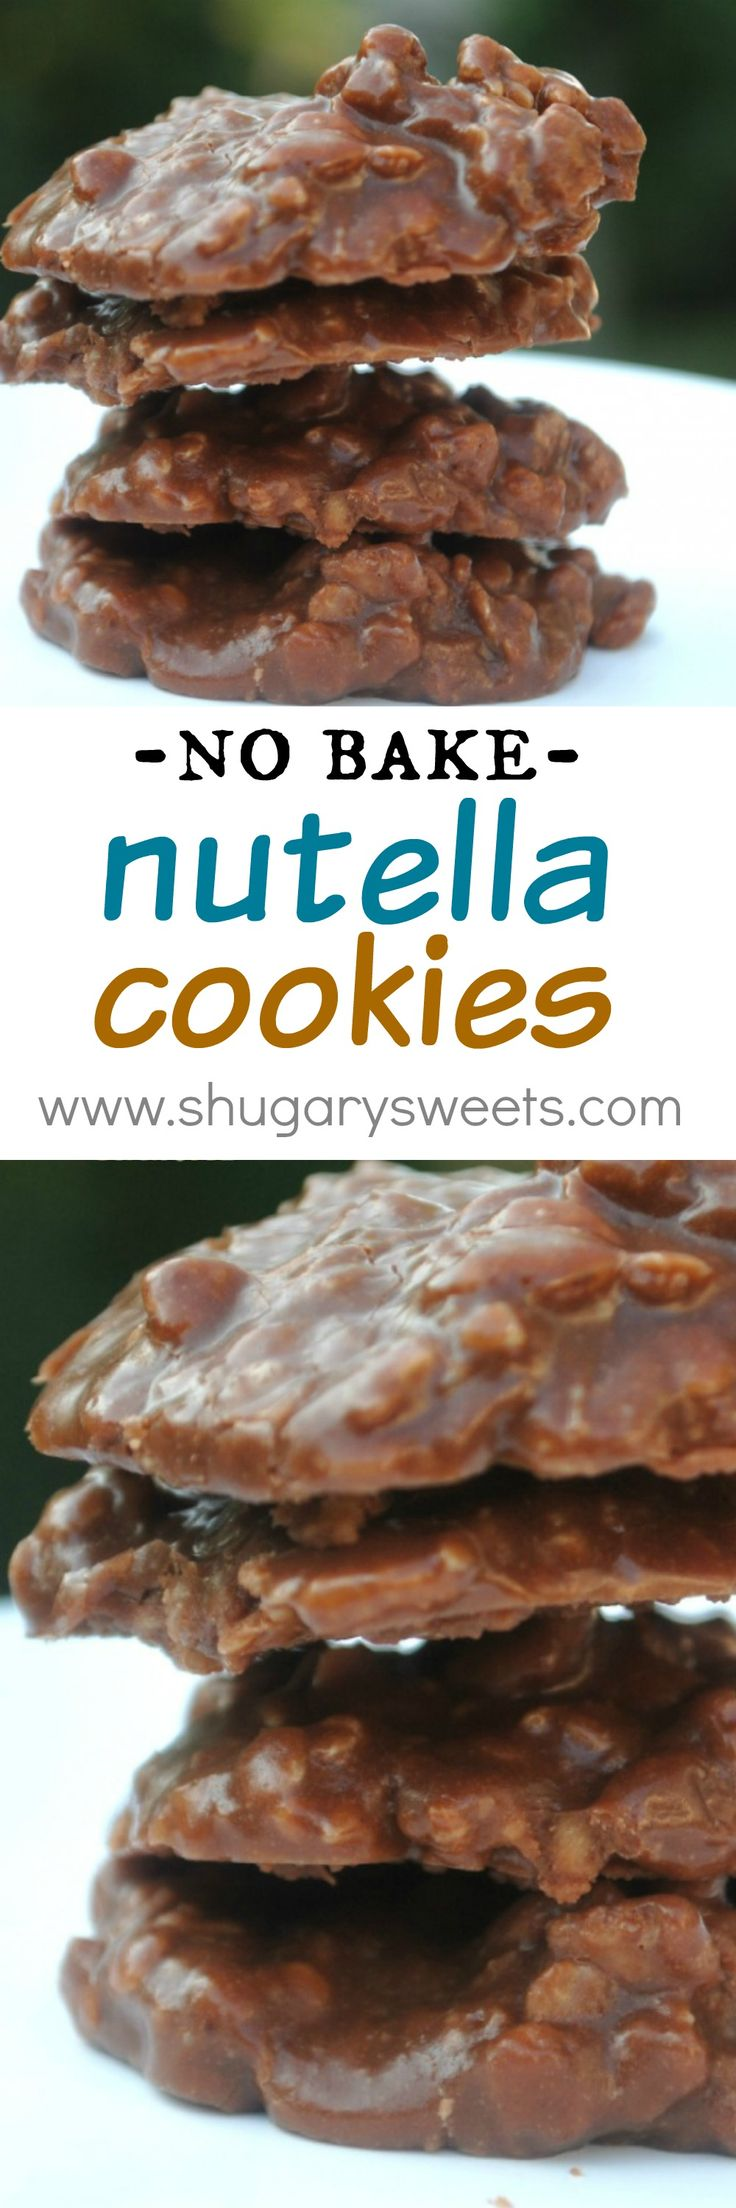 Nutella No Bake Cookies - Shugary Sweets